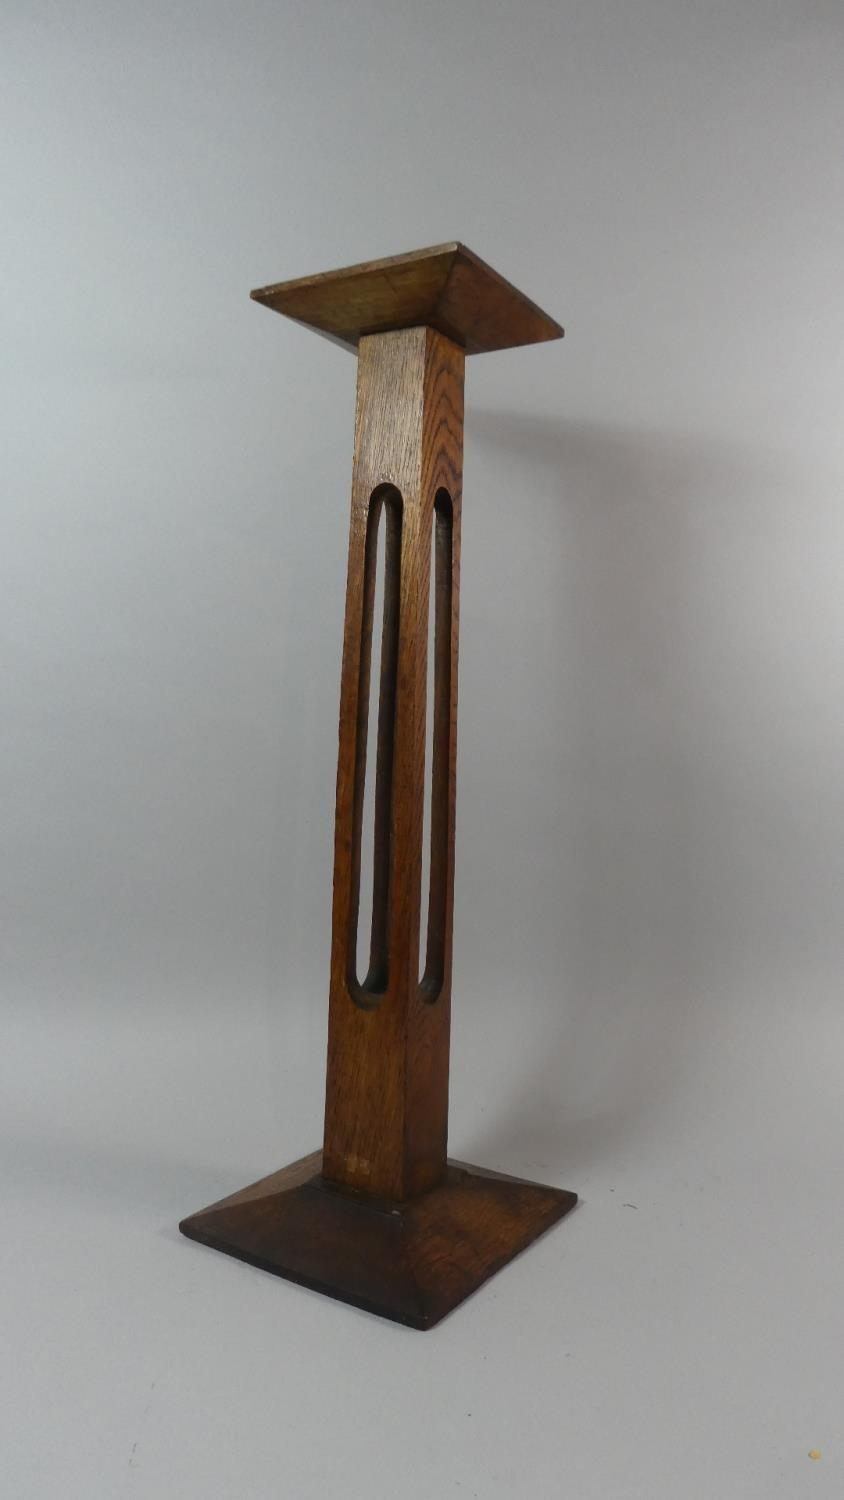 Lot 21 - An Early 20th Century Arts and Craft Oak Shop Display Stand. 61cm High